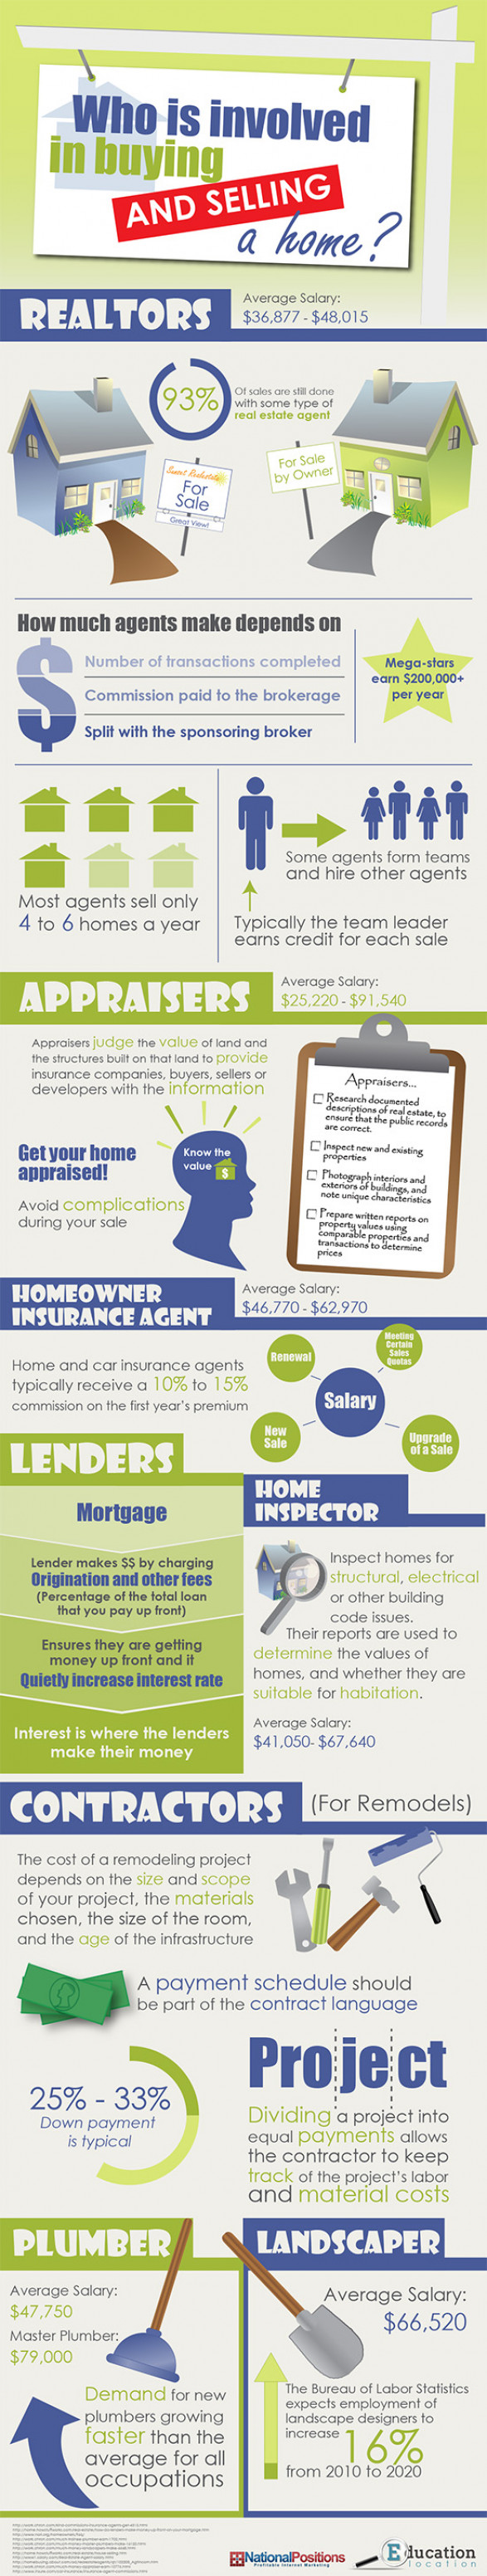 Who is involved in buying a house?